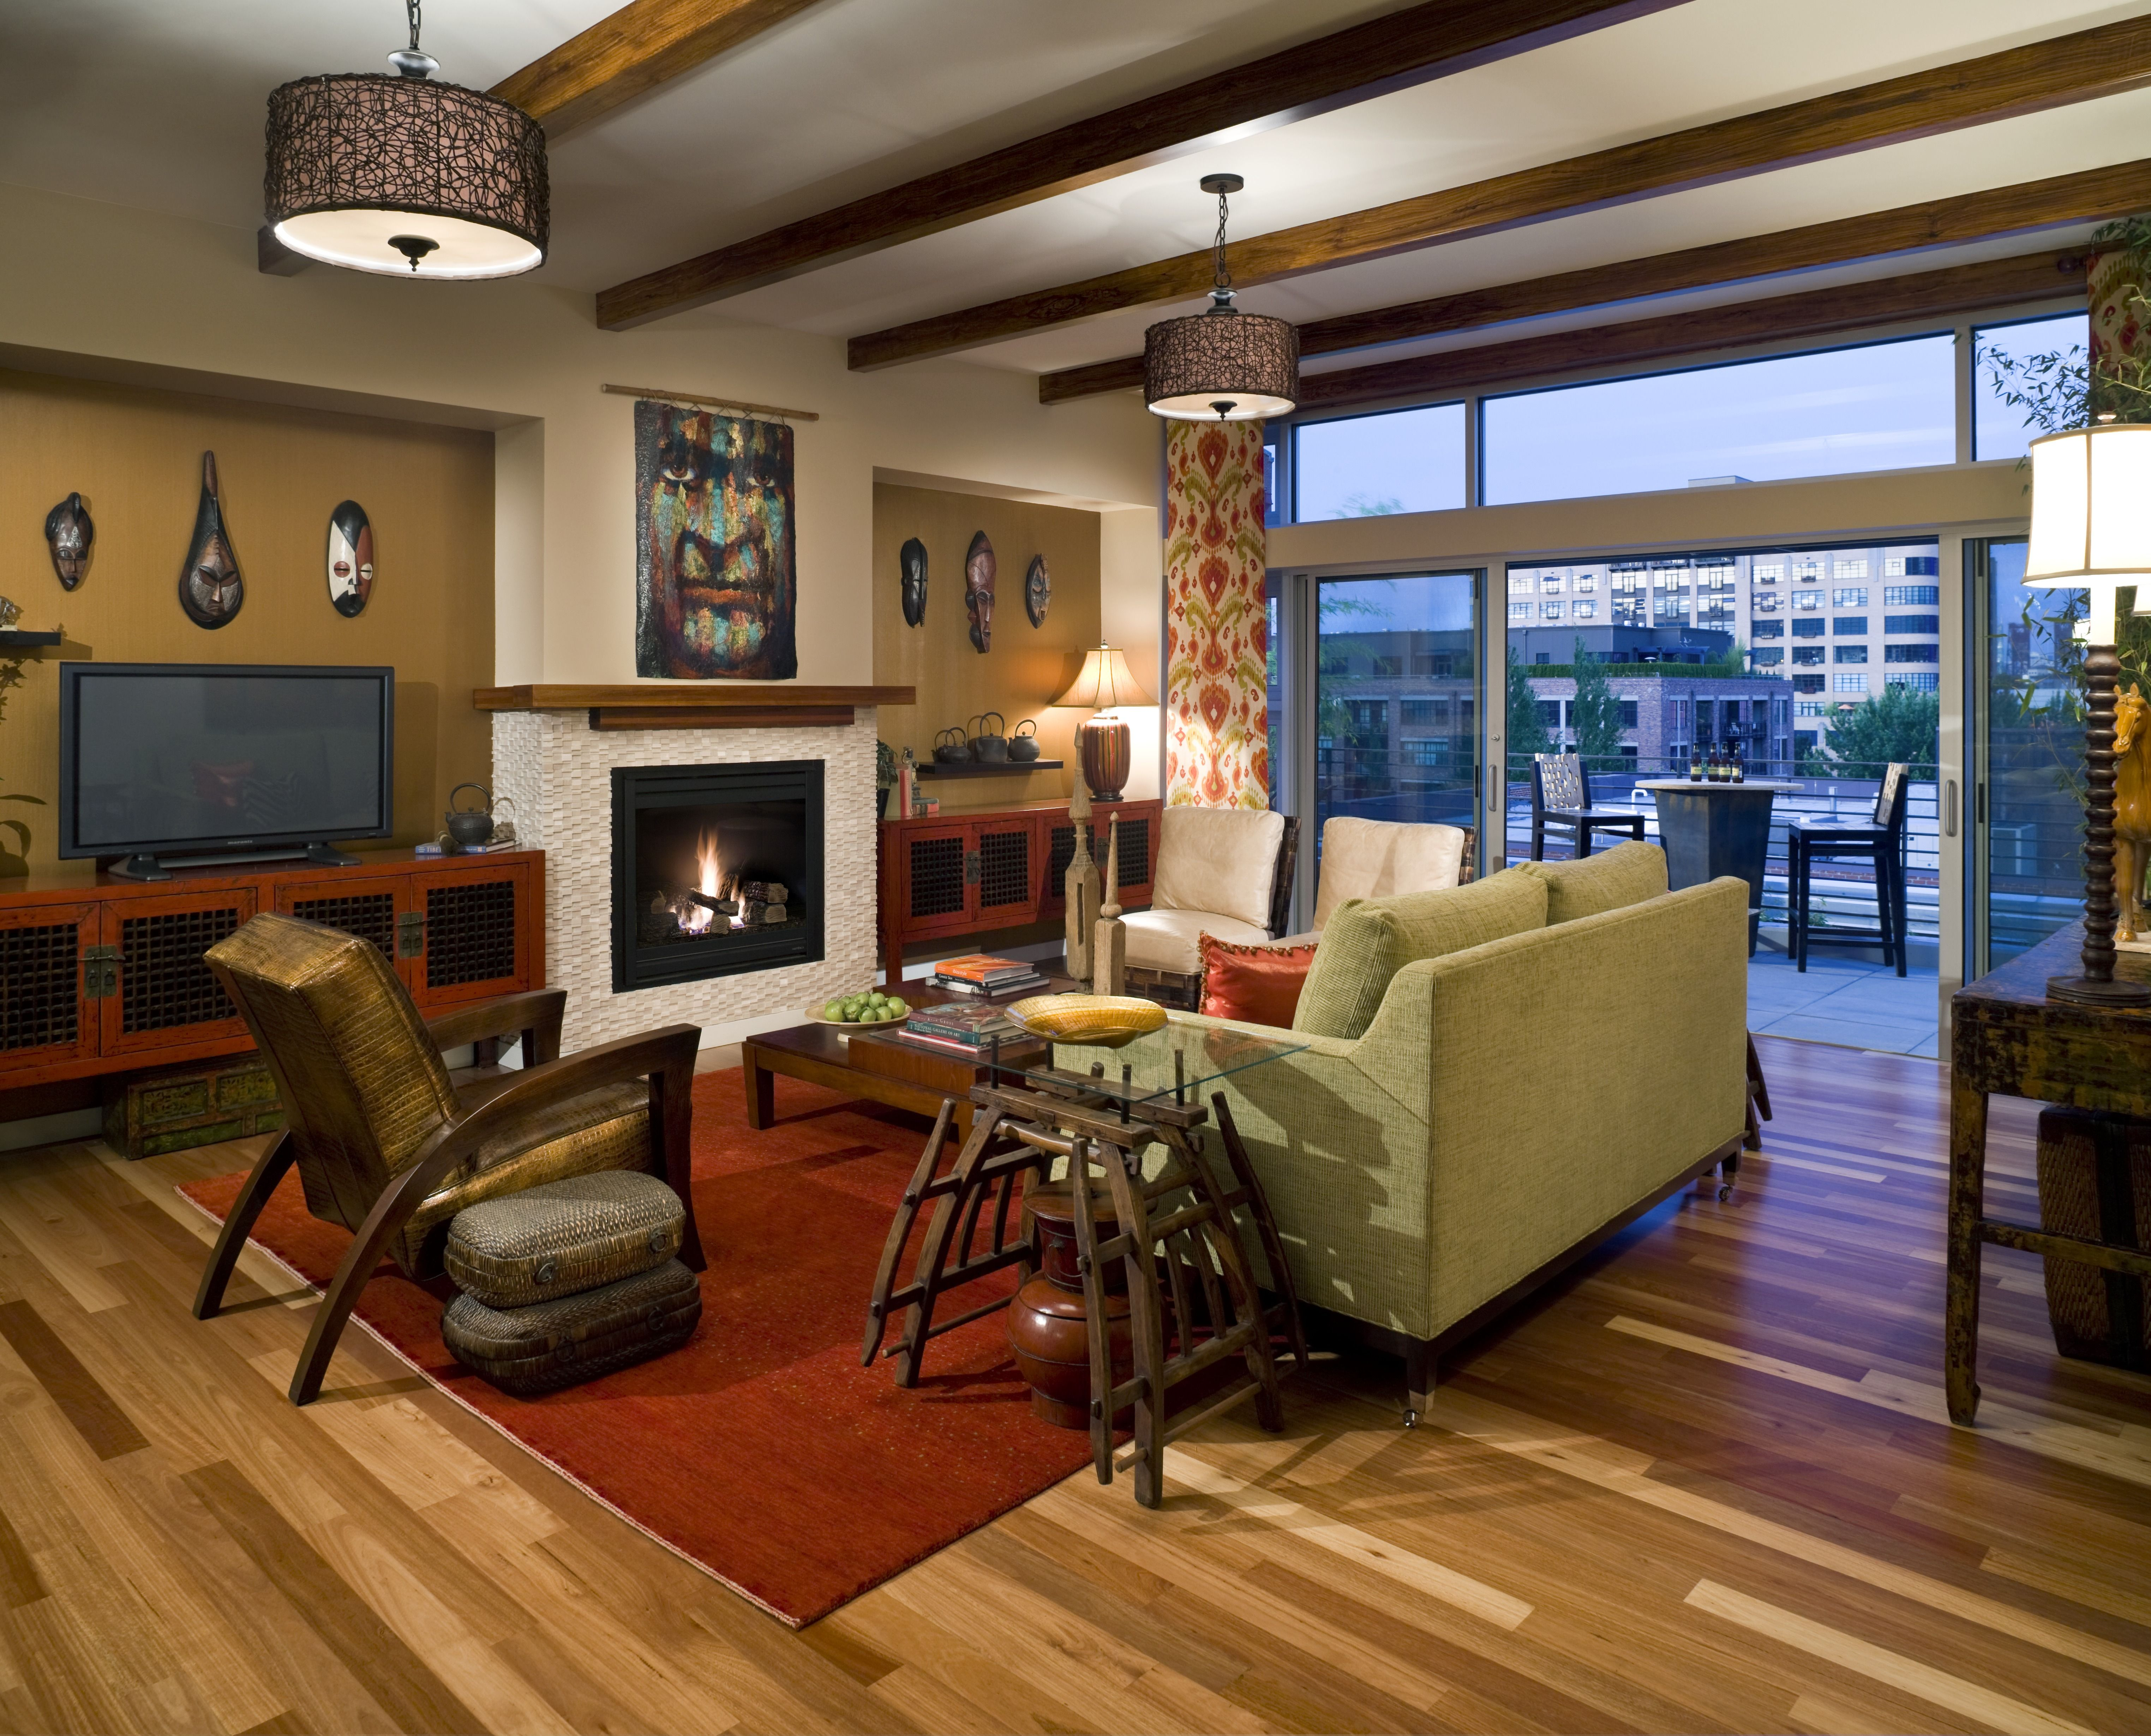 An Eclectic Family Room Design With Sliding Glass Doors Wood Beam